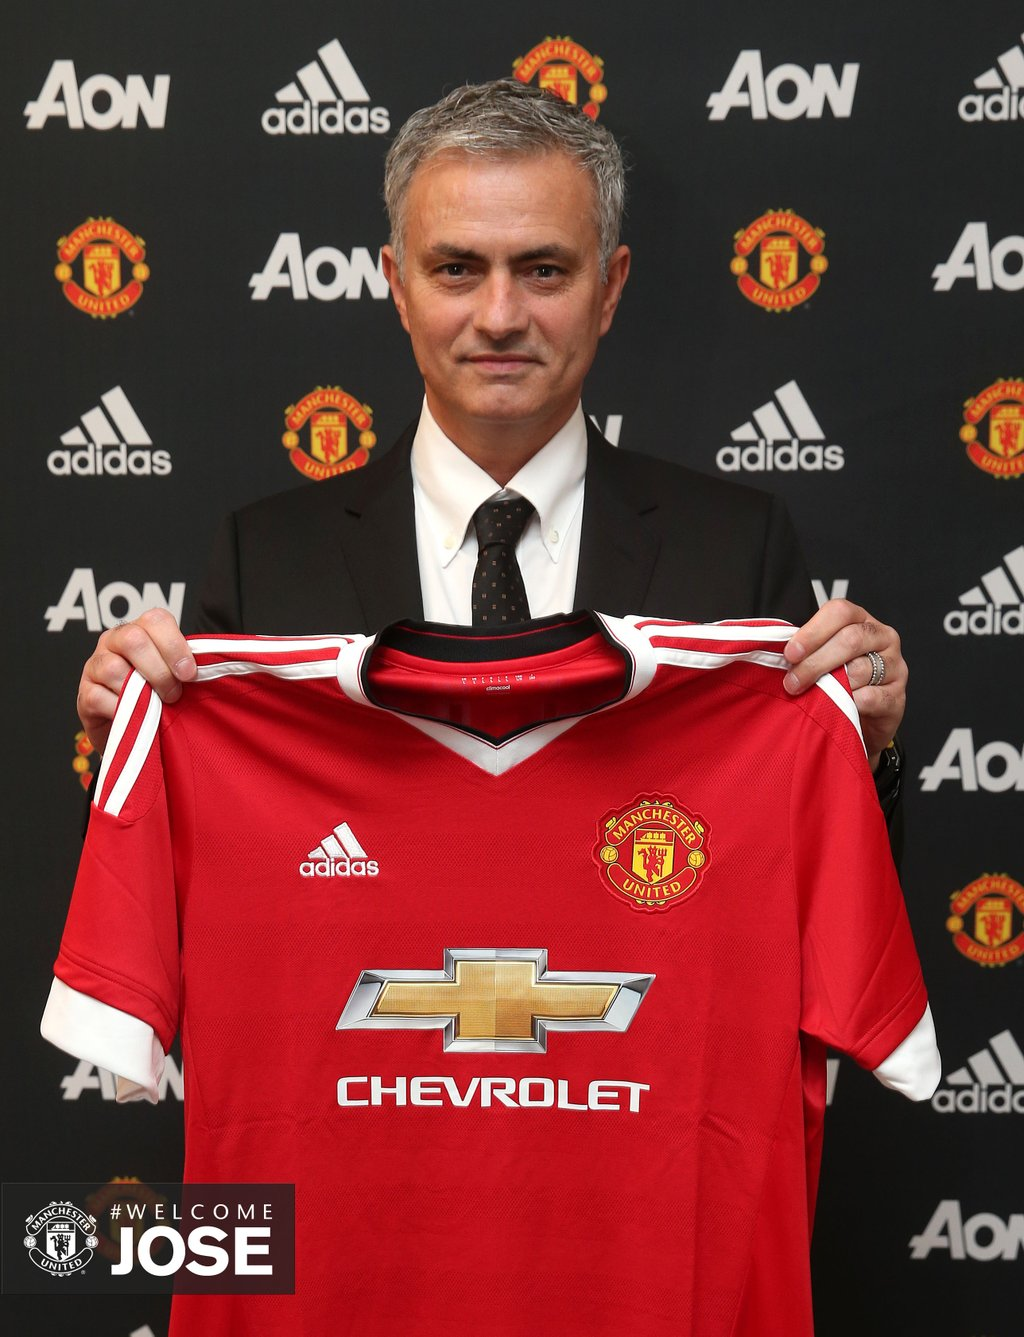 Manchester United on Twitter We are delighted to announce Jose Mourinho is our new manager! Full statement